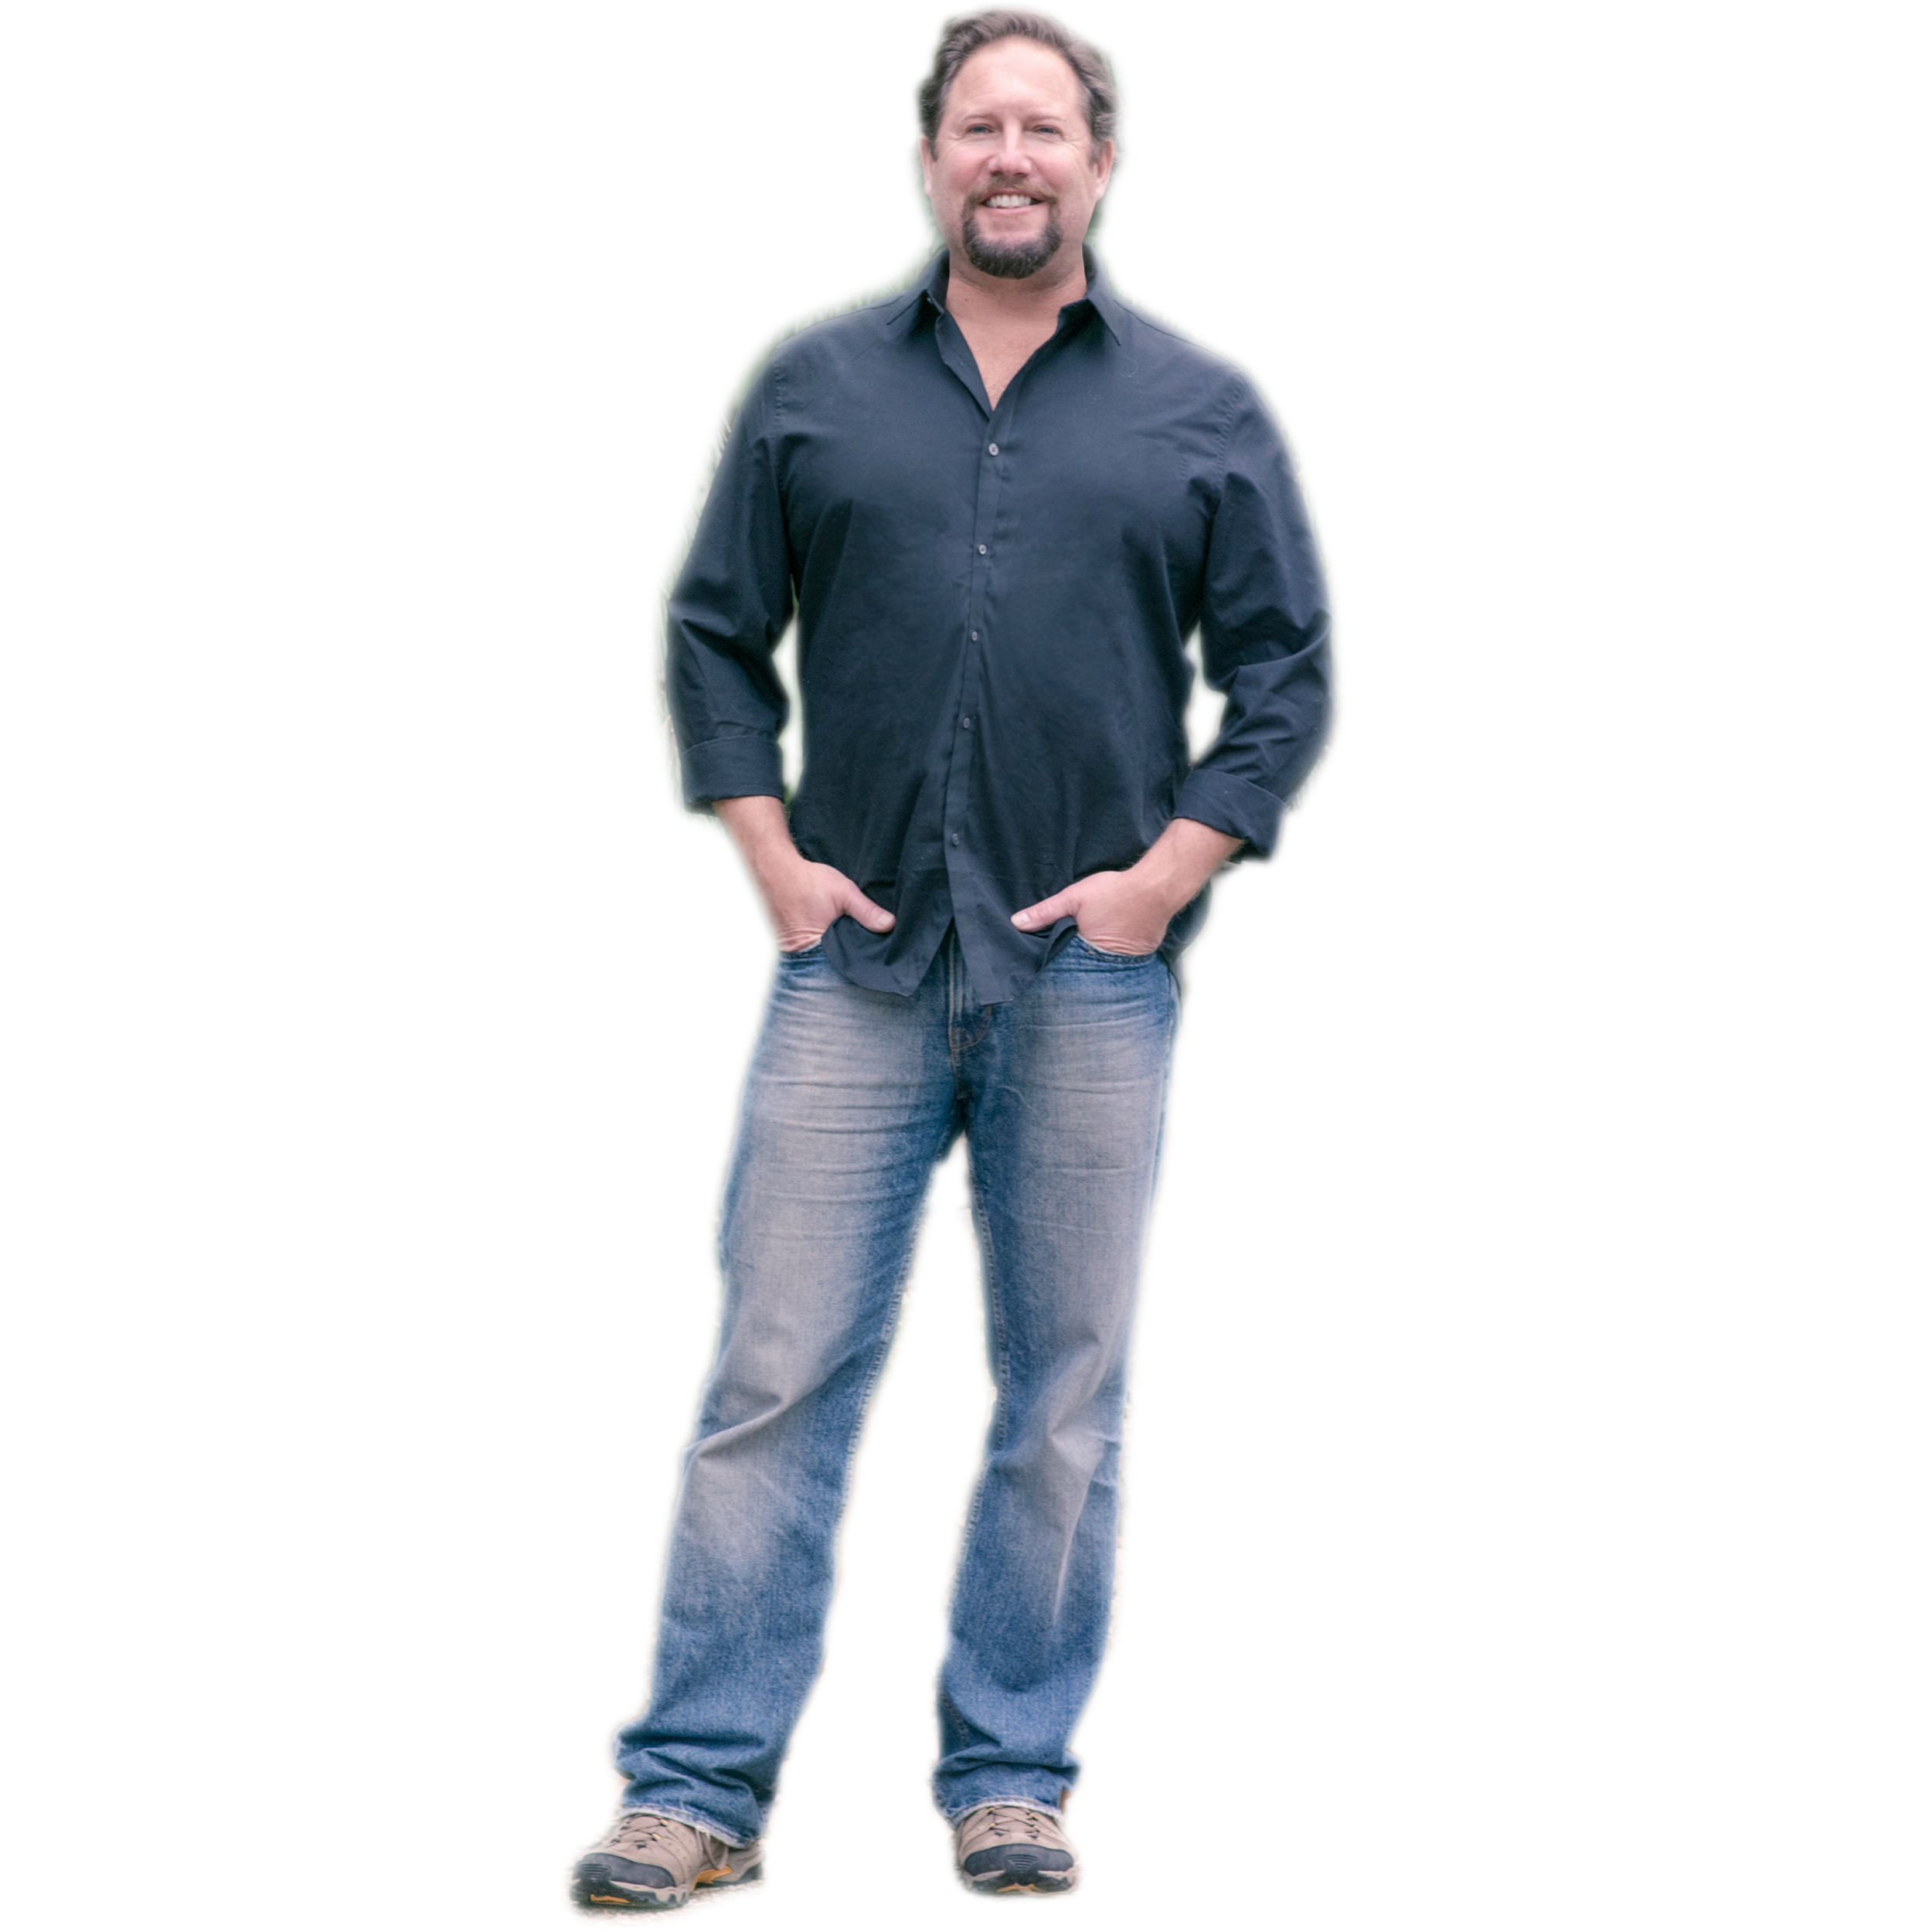 Chris DeCicco - Dating Coach, Matchmaker + CoFounder of Evolve Dating Gurus + Be The Love You Are